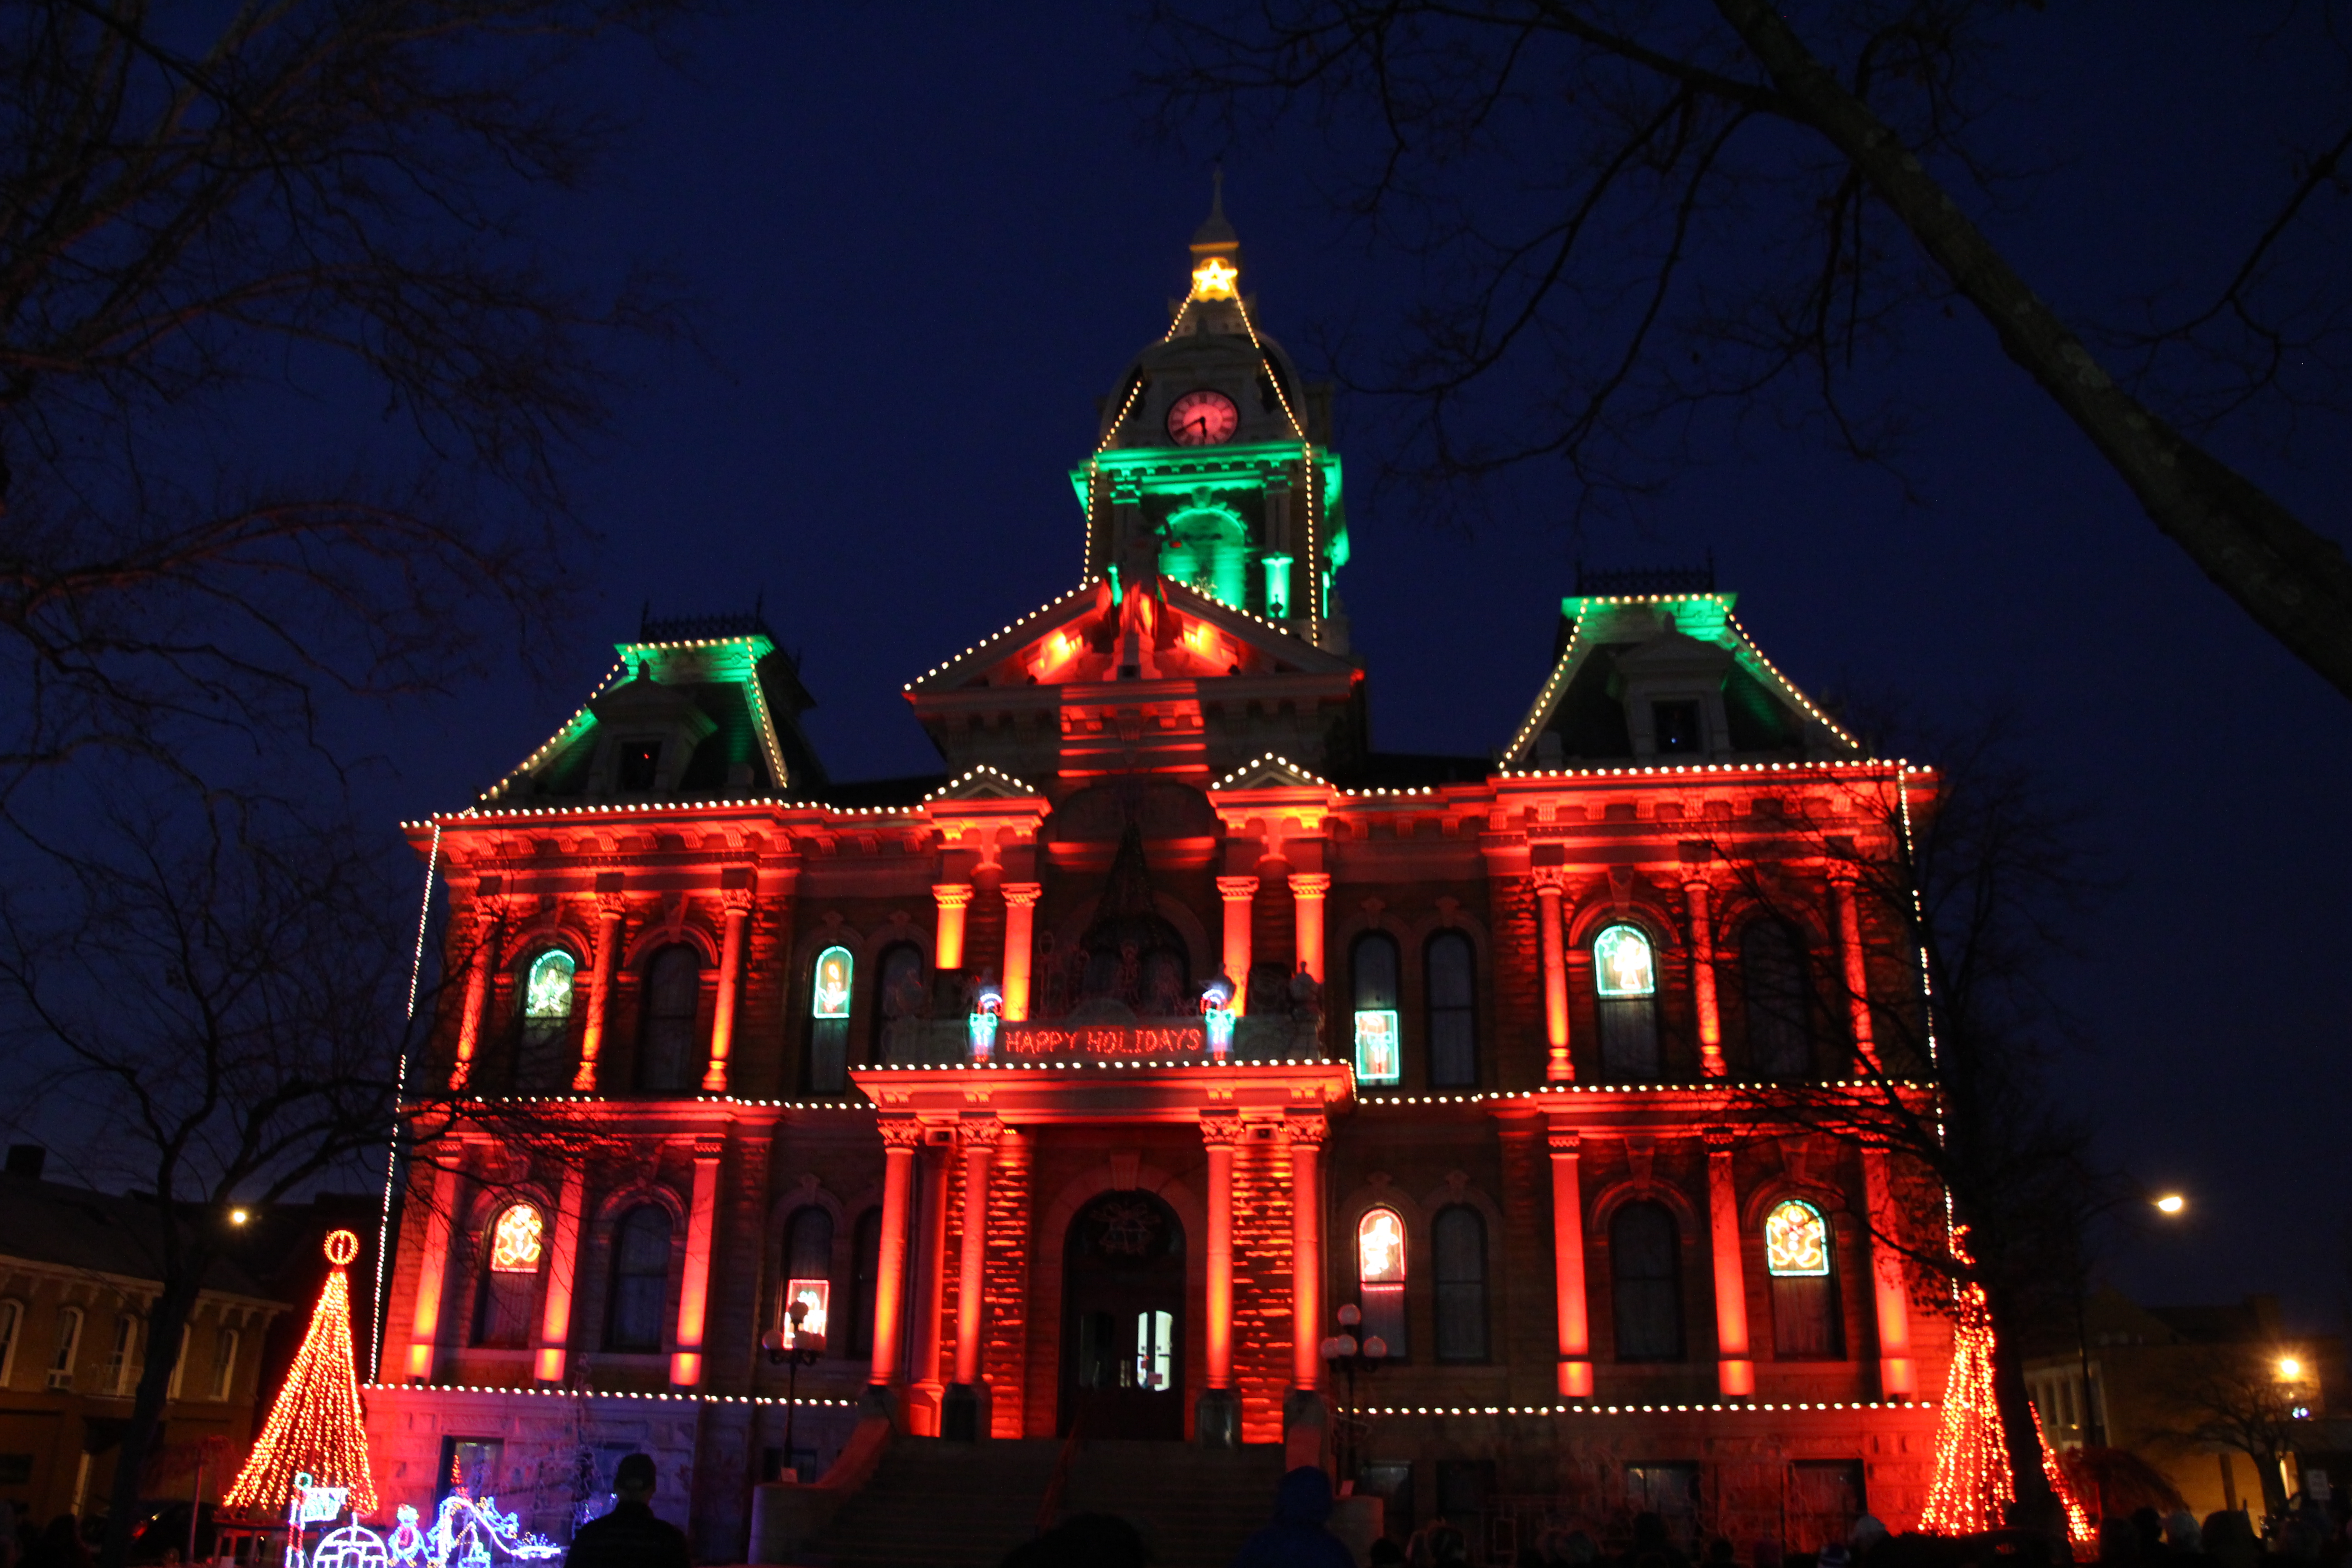 Guernsey County Ohios Courthouse Christmas Light Display 2020 Best Christmas Lights Displays in Ohio   Ohio Girl Travels